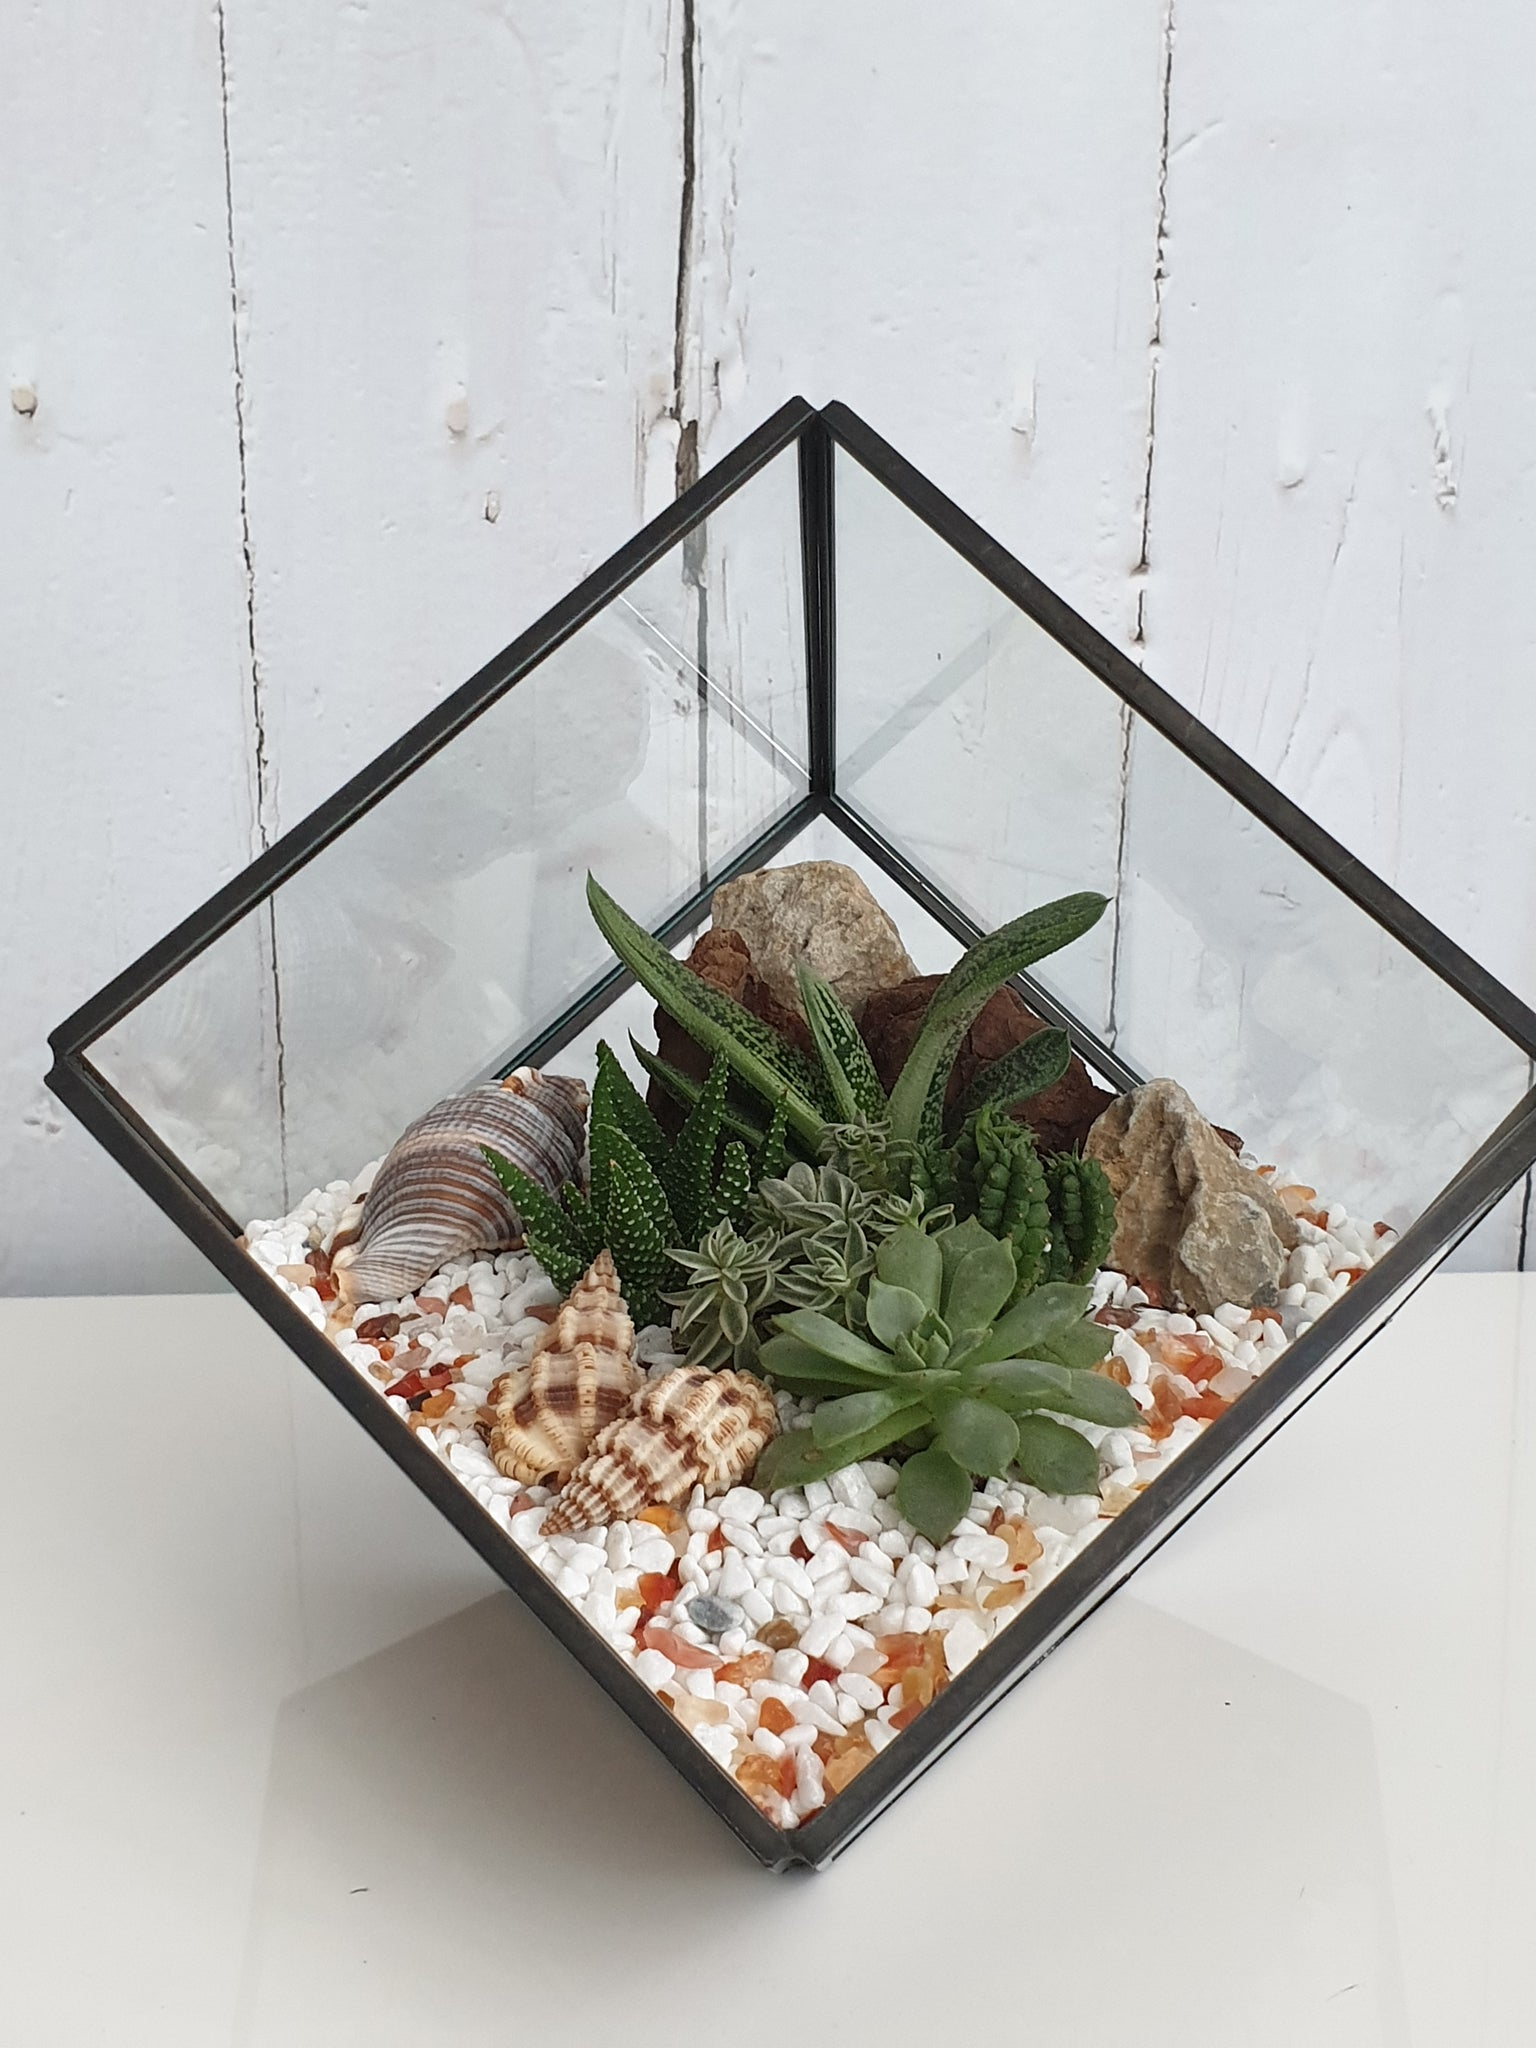 Personalised geometric terrarium